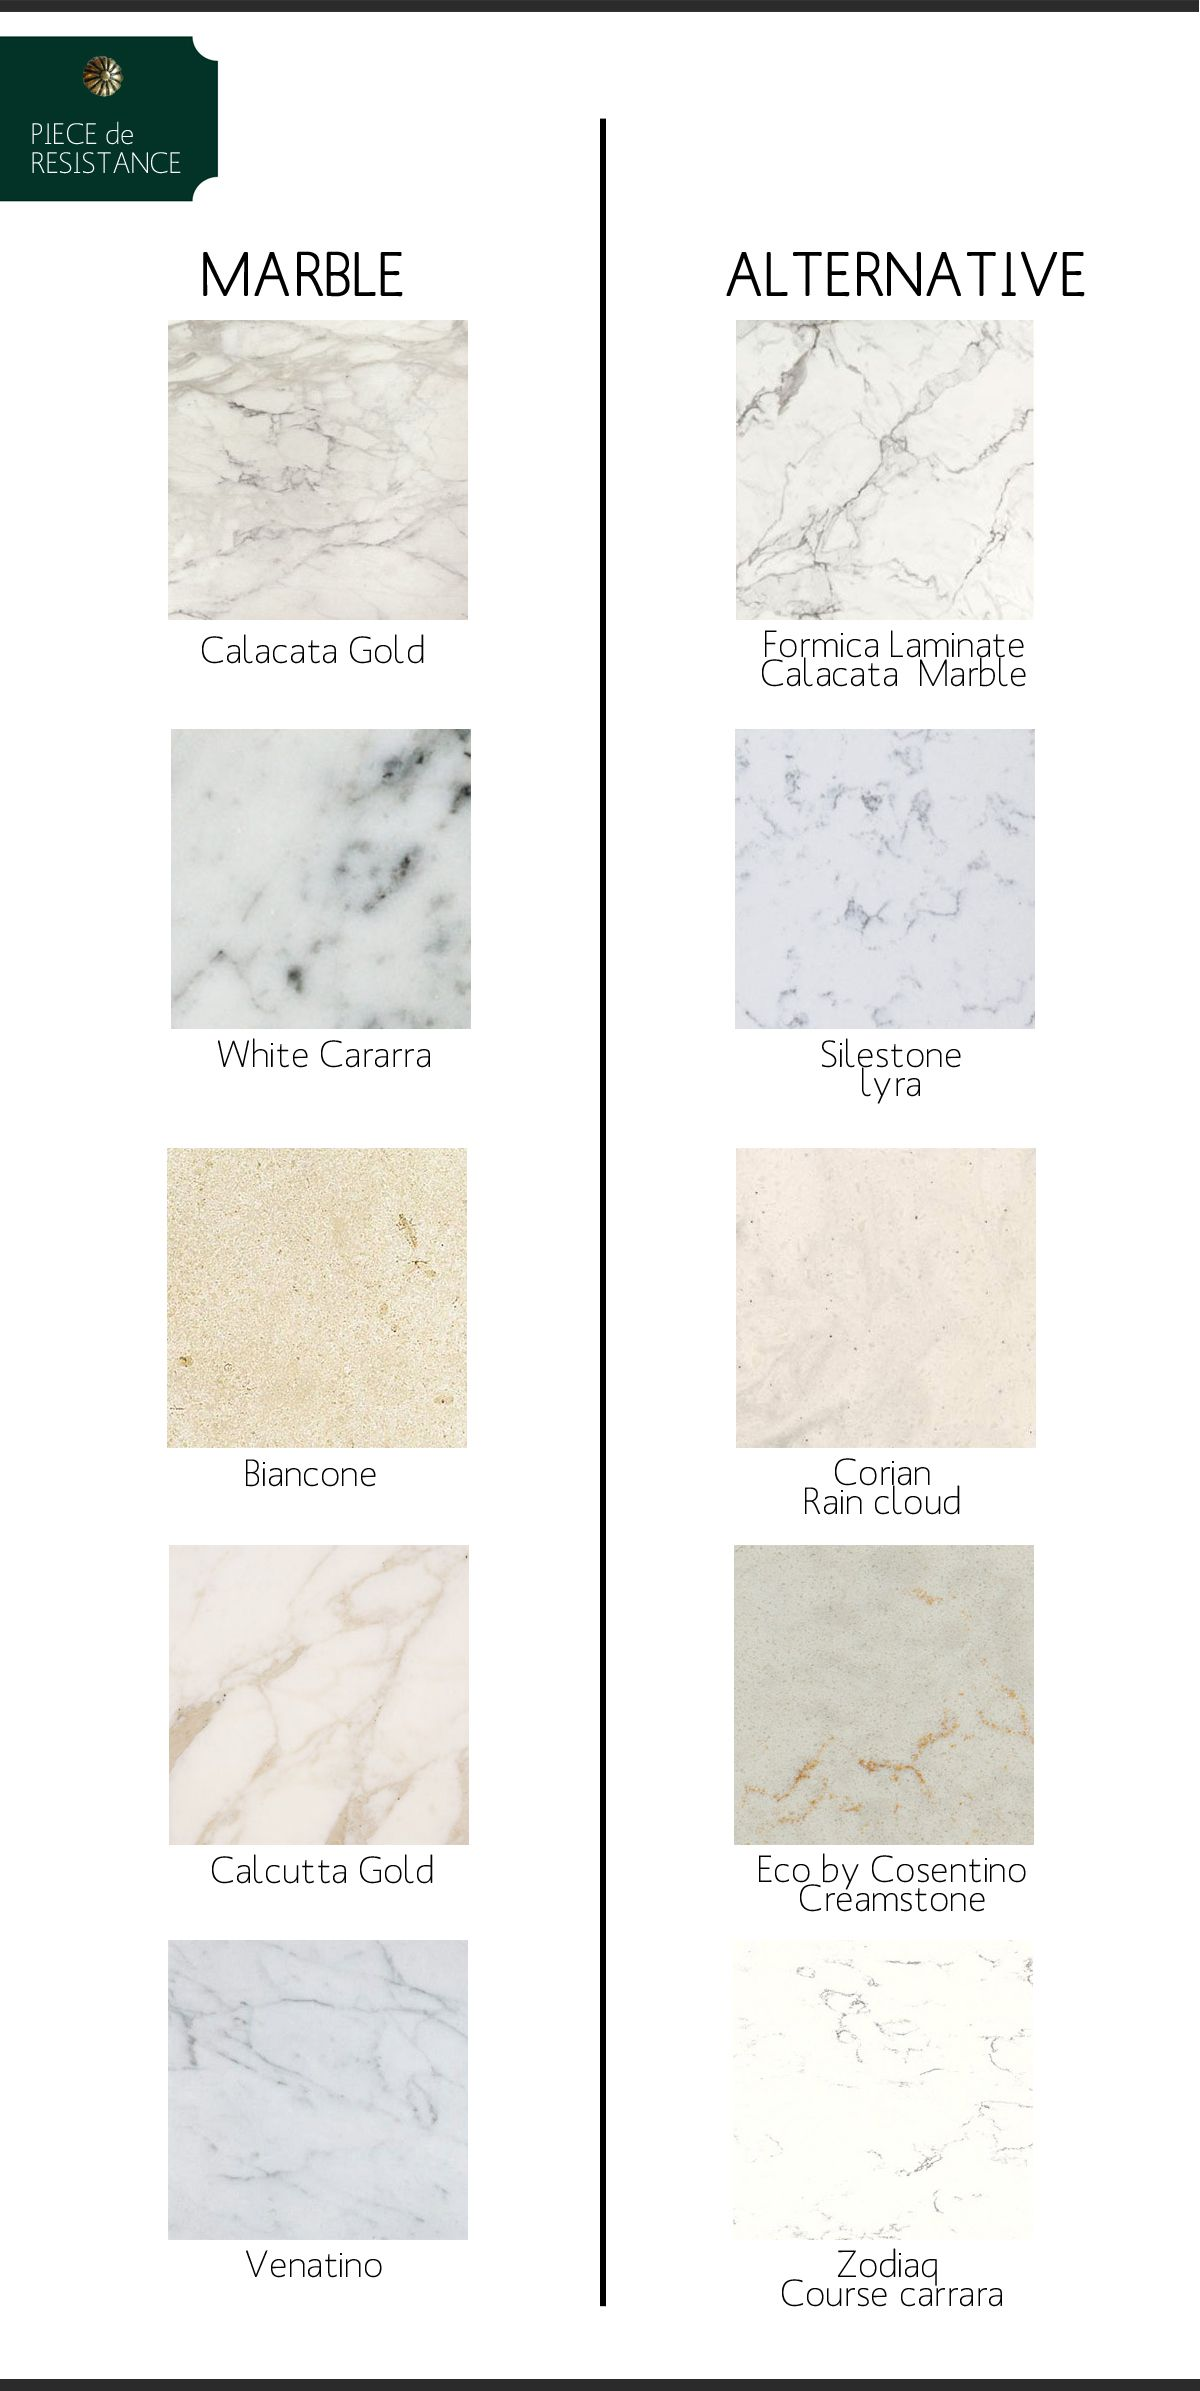 replacing kitchen countertops Marble Countertops Alternatives I need to remember this for the kitchen counter top